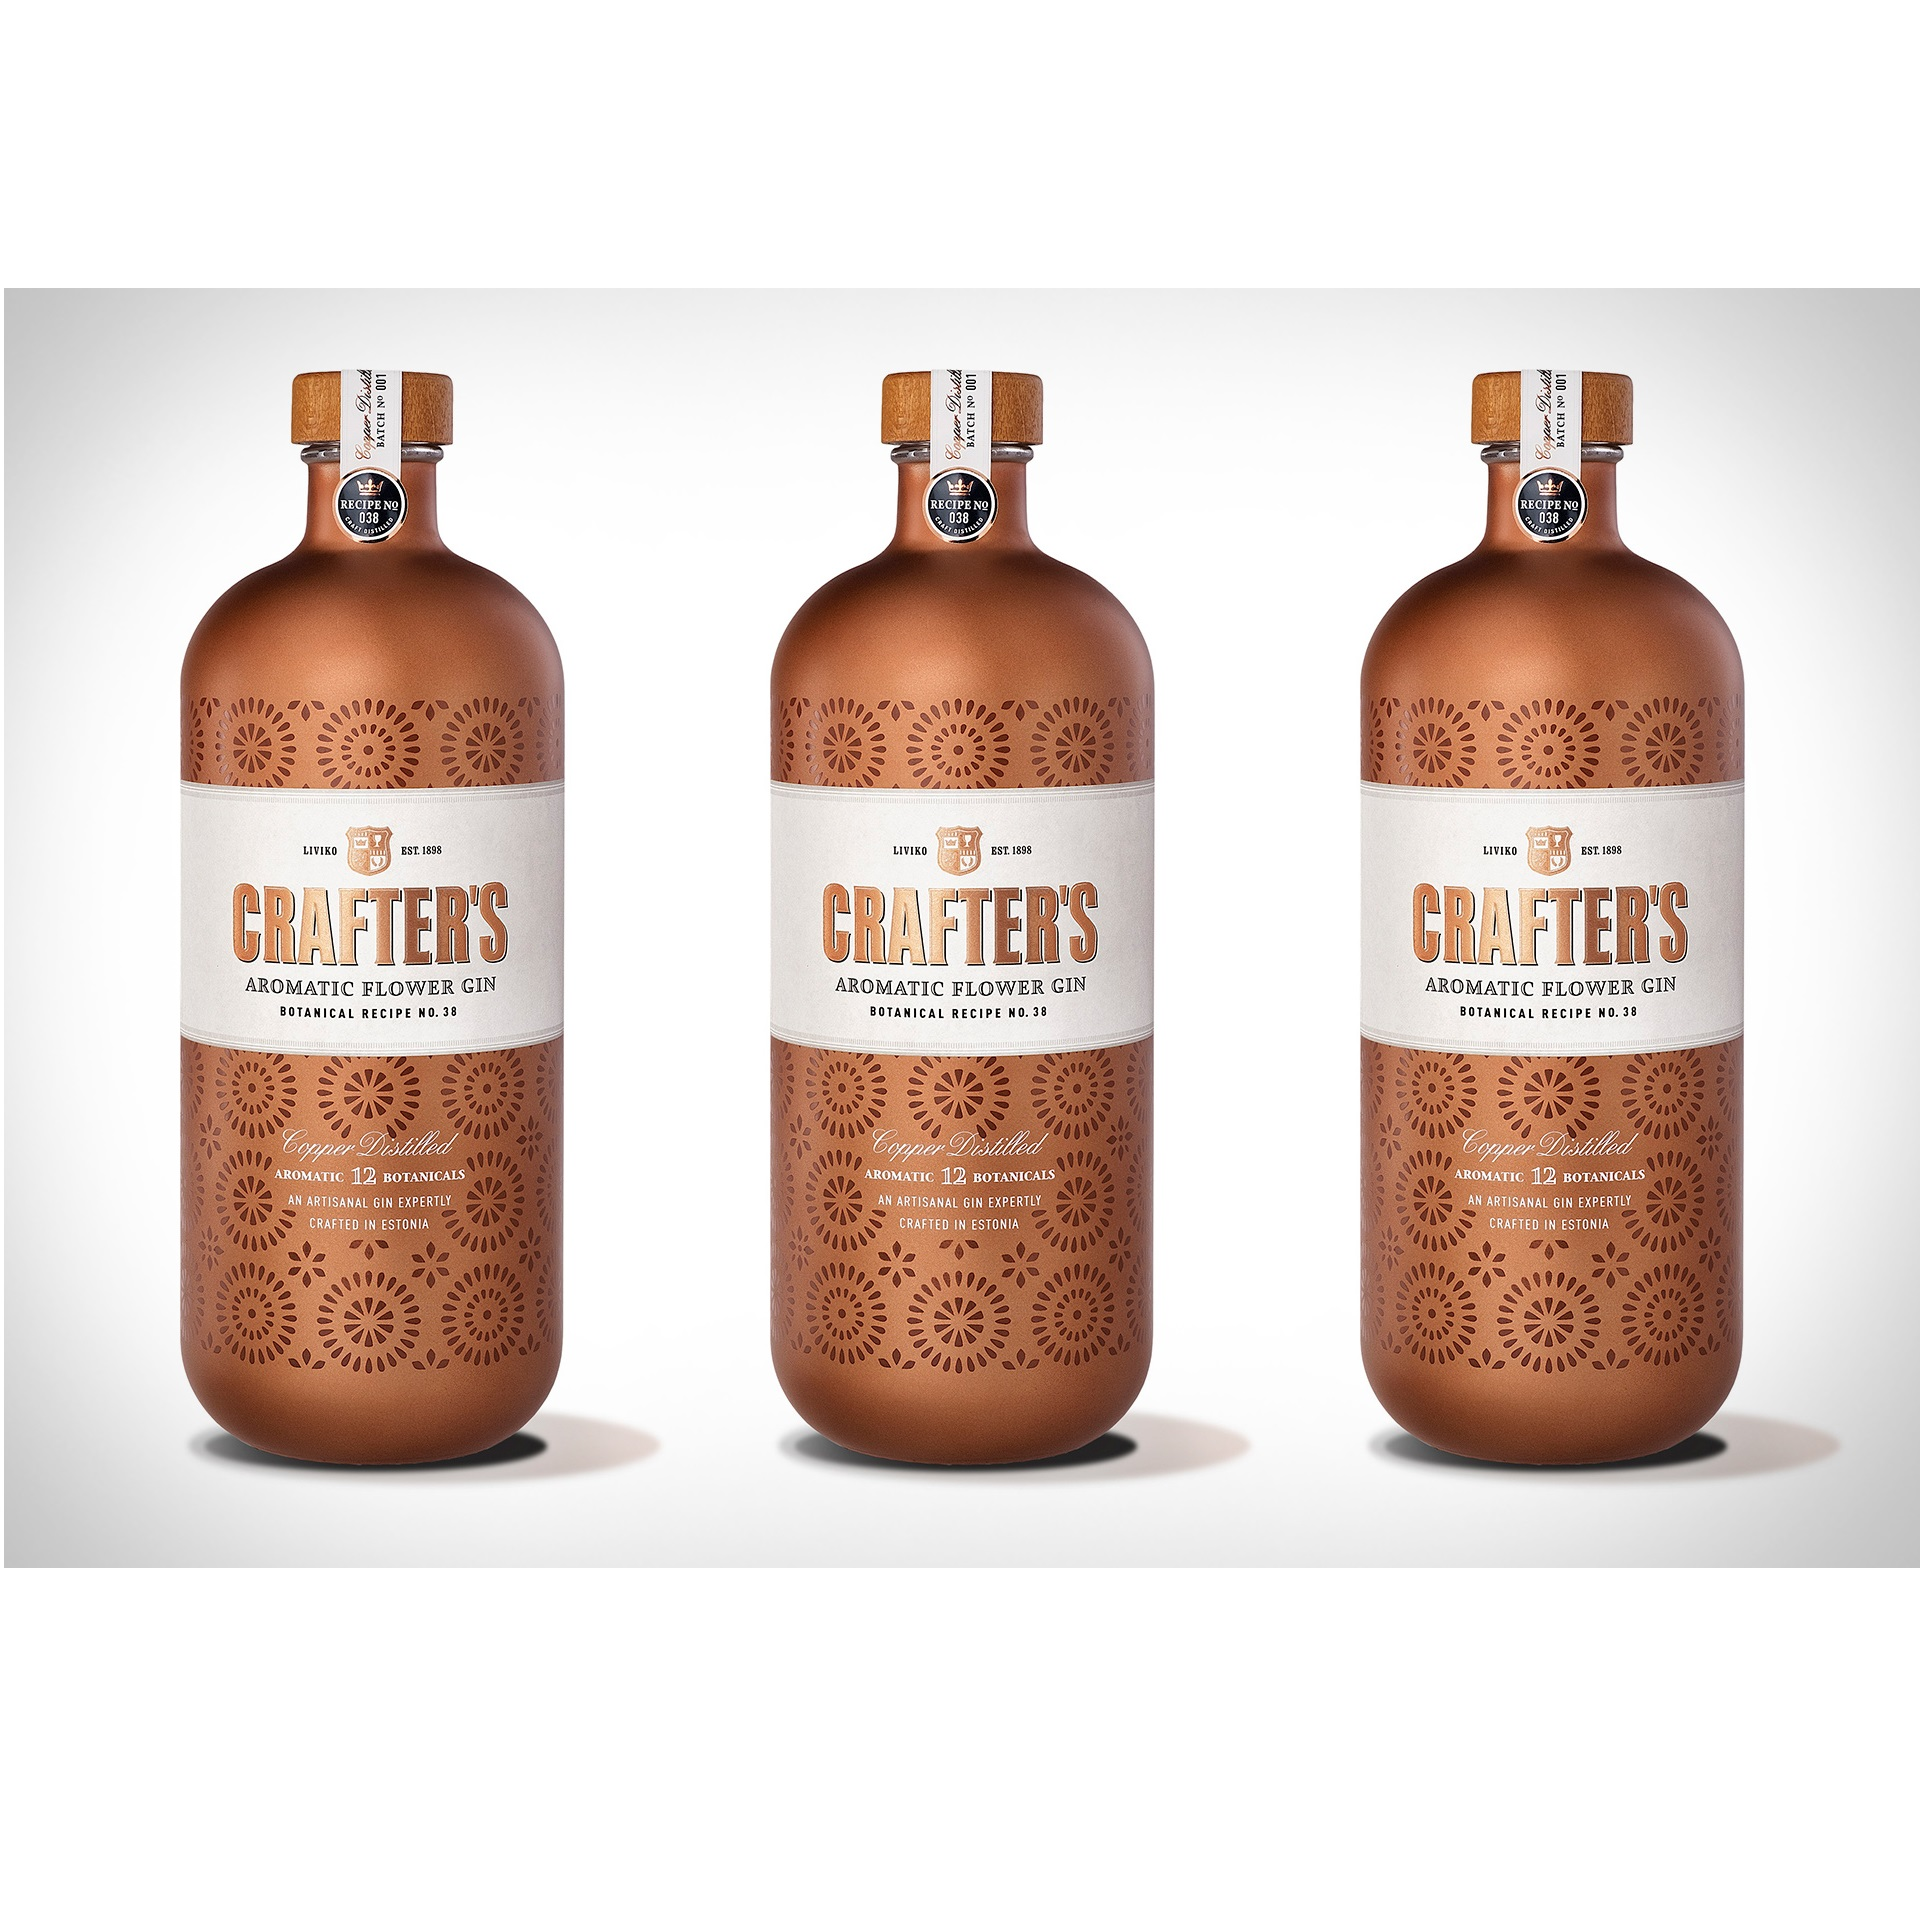 Sweet Round Character Estonia London Gin Blended Glass Bottle with over 40% Alcohol and Juniper Berry